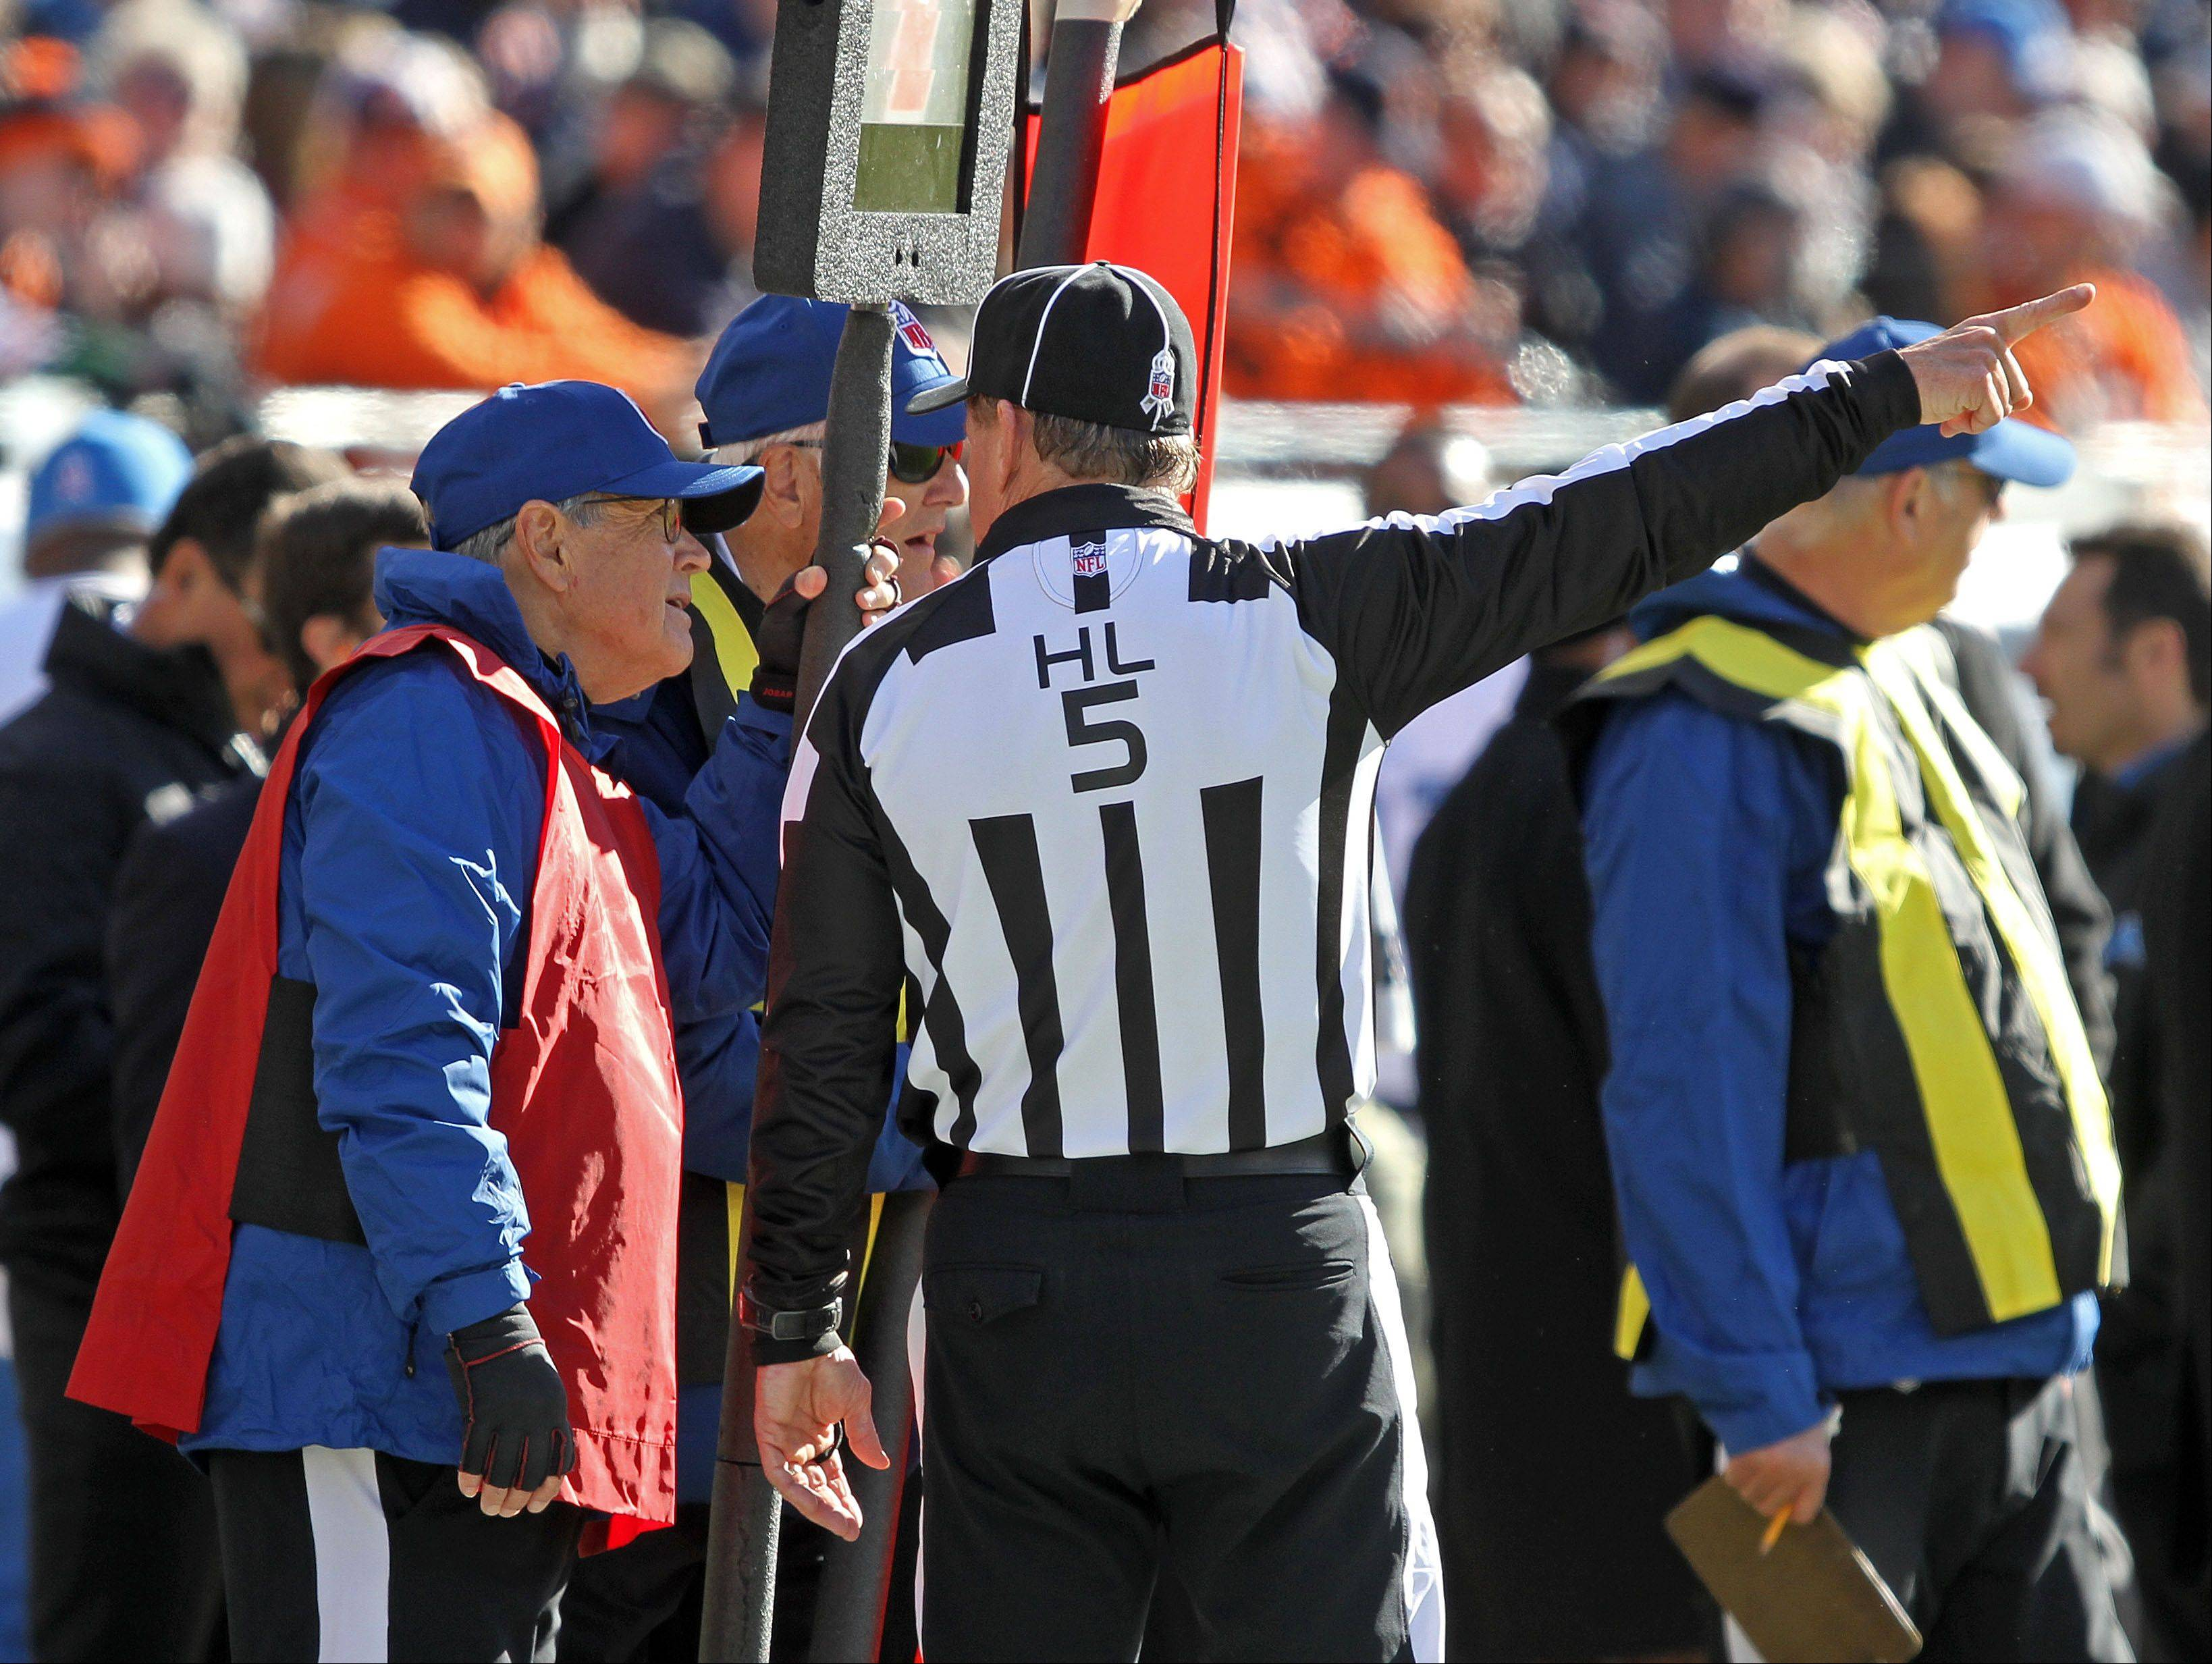 Harold Schwind of Roselle listens to instructions from NFL Head Linesman John McGrath while working the down box during the Bears game Sunday, Nov. 9.